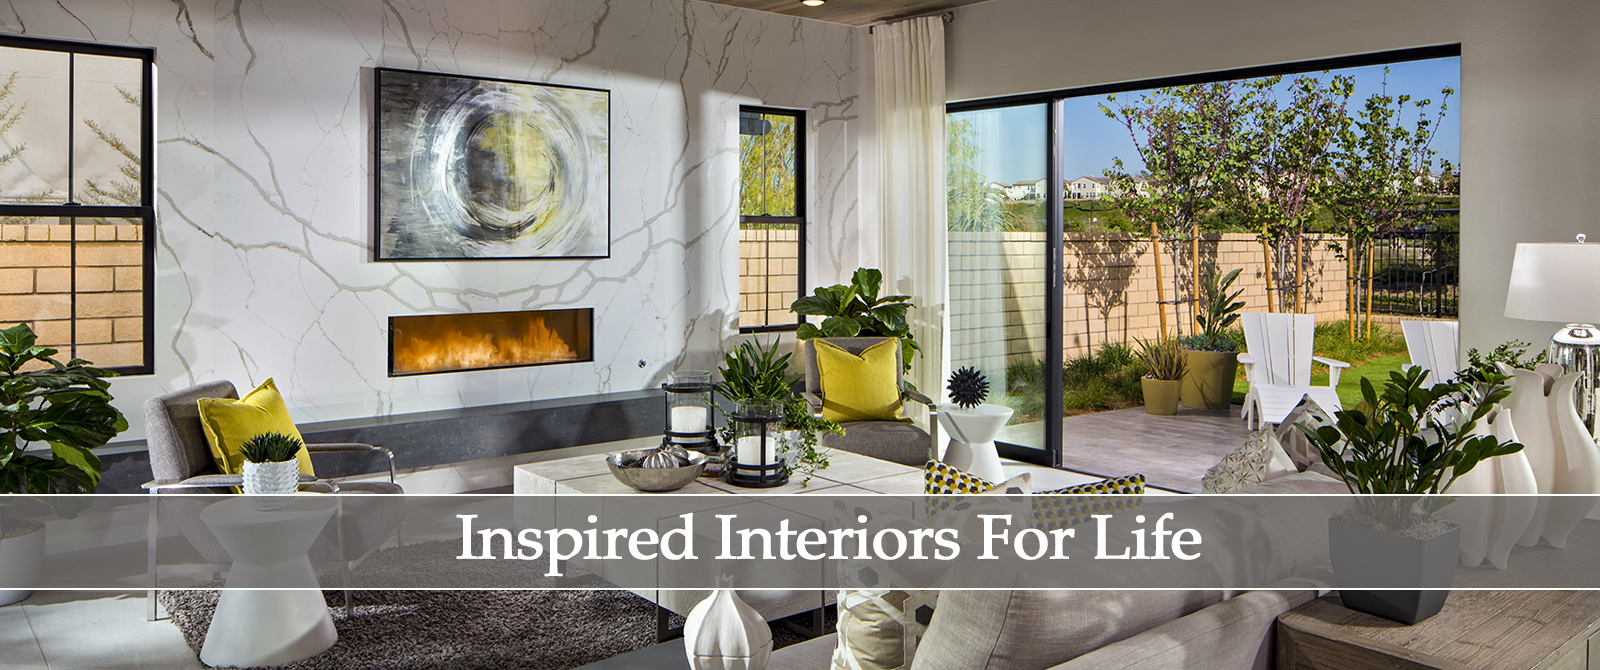 U201cWith IN Designu0027s Commitment To Creating Modern And Innovative Interiors  Has Helped Pardee Homes San Diego Fulfill Our Mission To Deliver  Award Winning ...